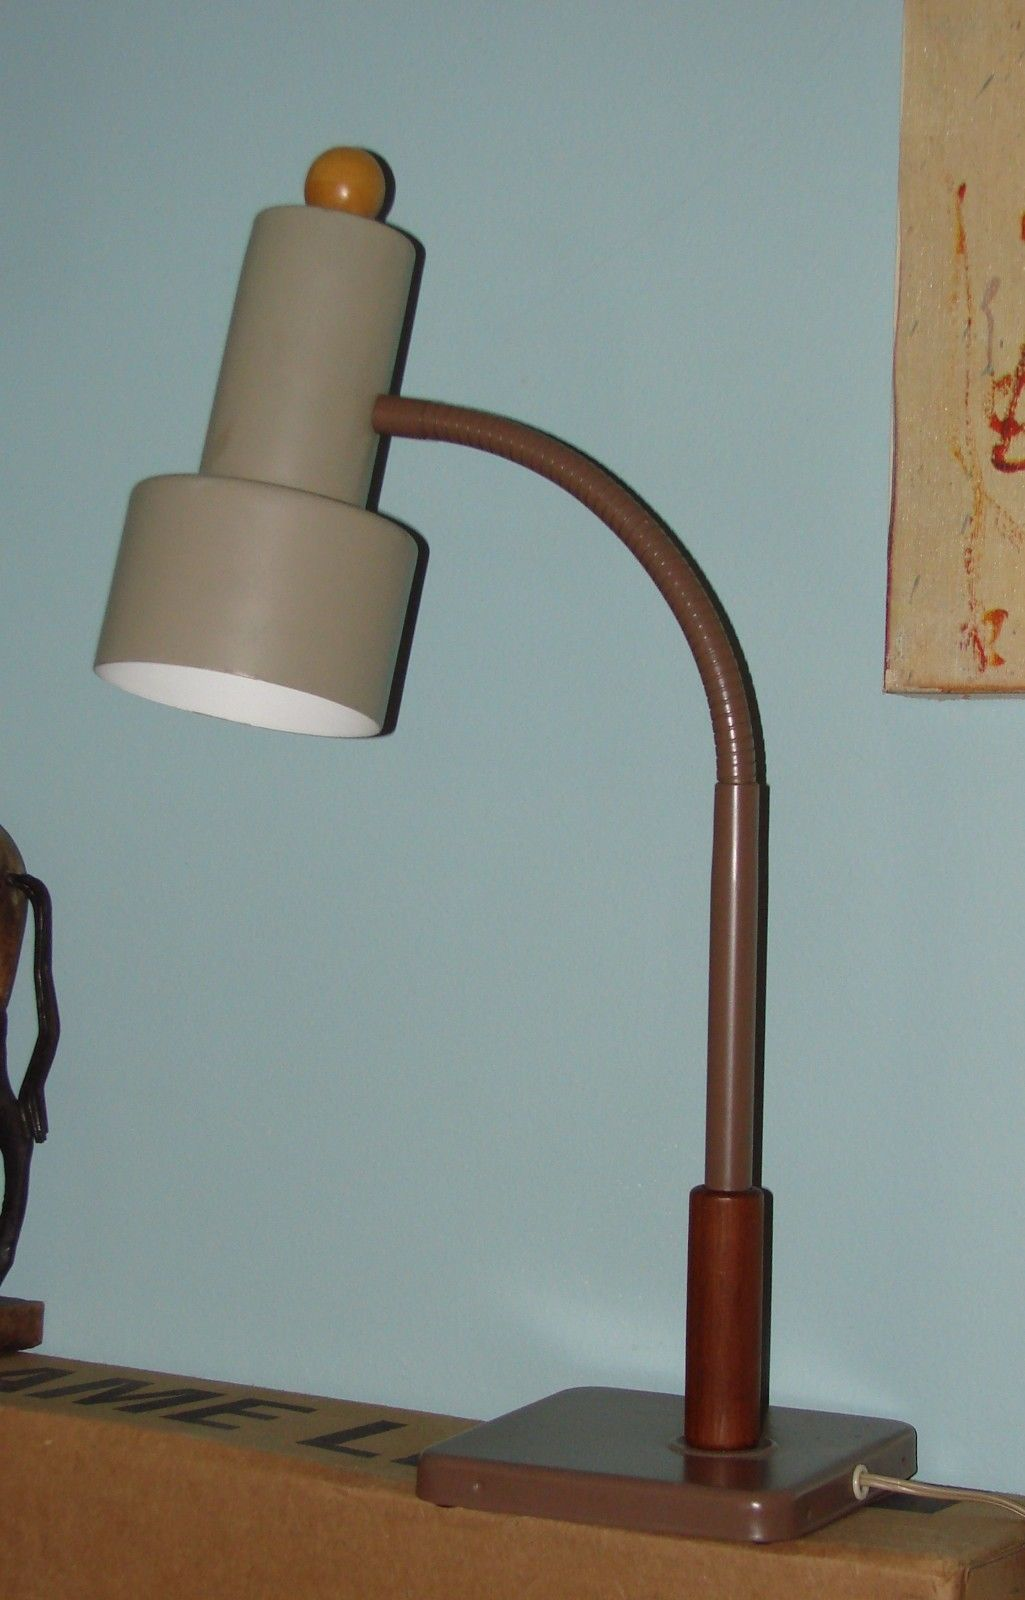 gooseneck table lamp photo - 7